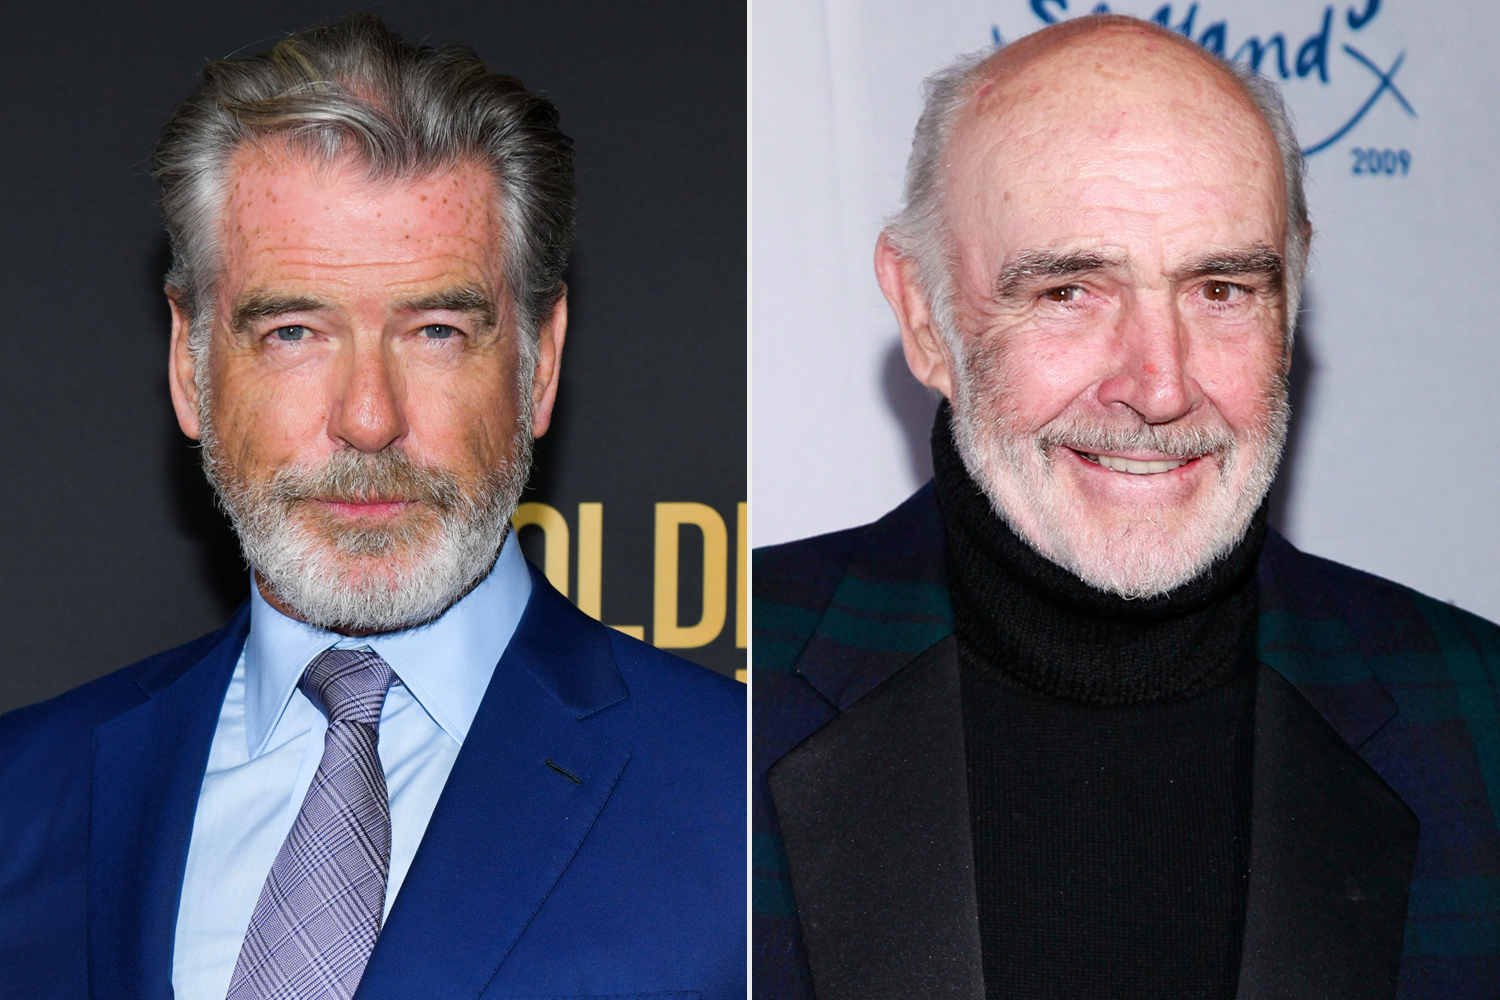 Pierce Brosnan, Sean Connery